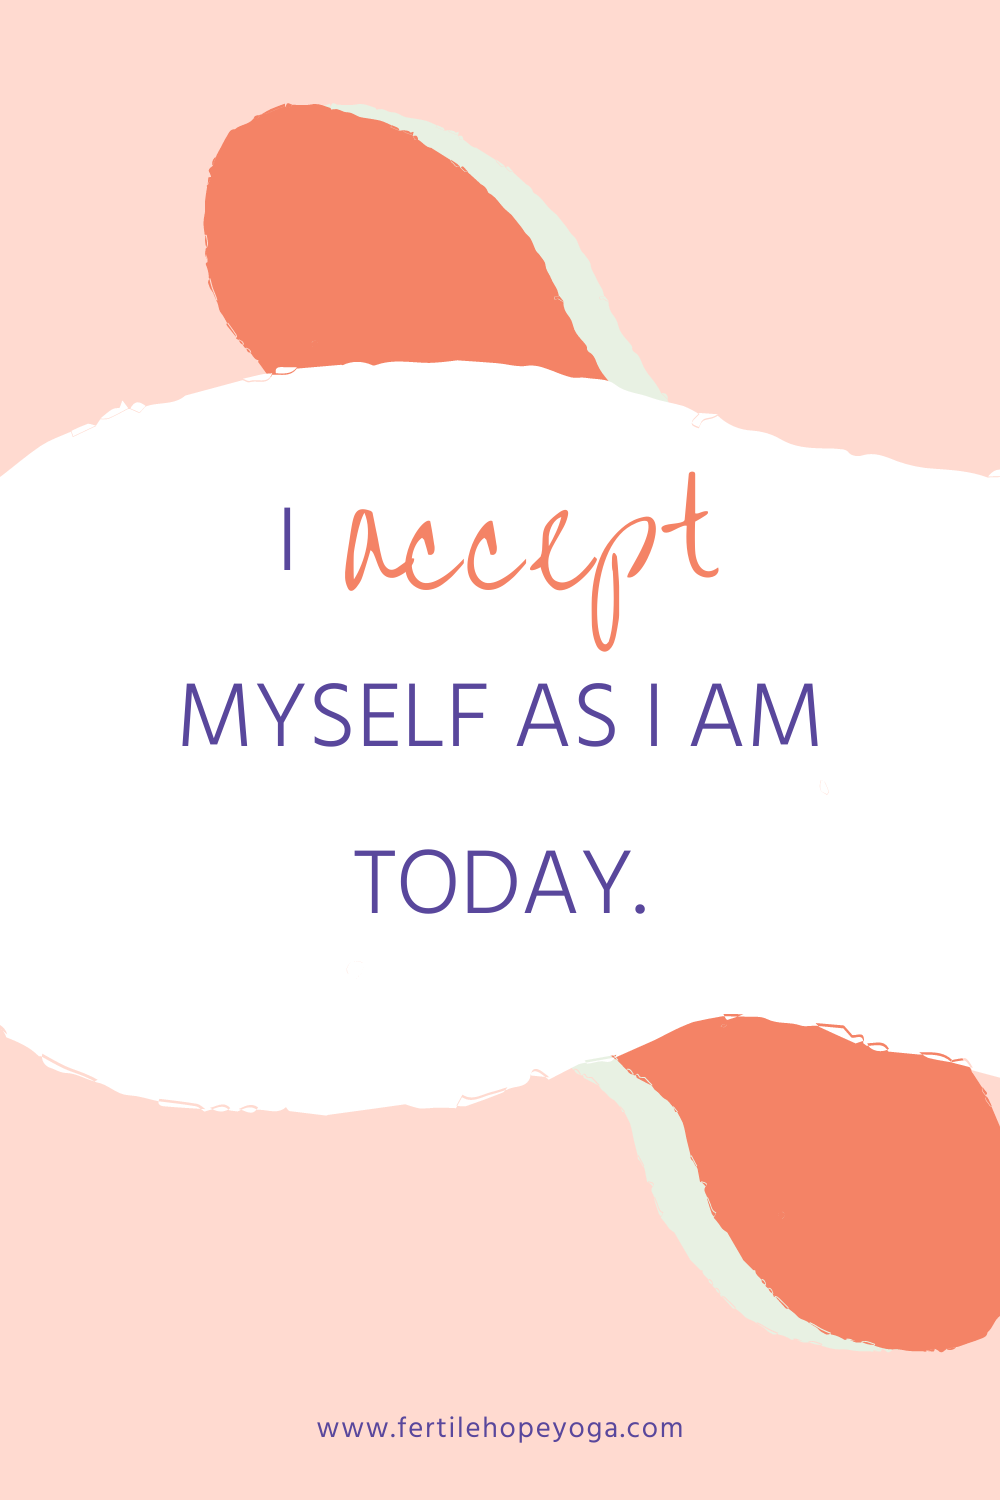 Struggling with infertility and trying to conceive is the hardest journey to navigate. You can bring positivity, hope and light into your life using affirmations, mantras and positive quotes. This FREE cycle specific fertility affirmation deck which you can download will help you create a more positive frame of mind and concentrate on the things you can control infertility | fertility affirmations | ttc | trying to conceive #fertilitytips #gettingpregnant #fertility